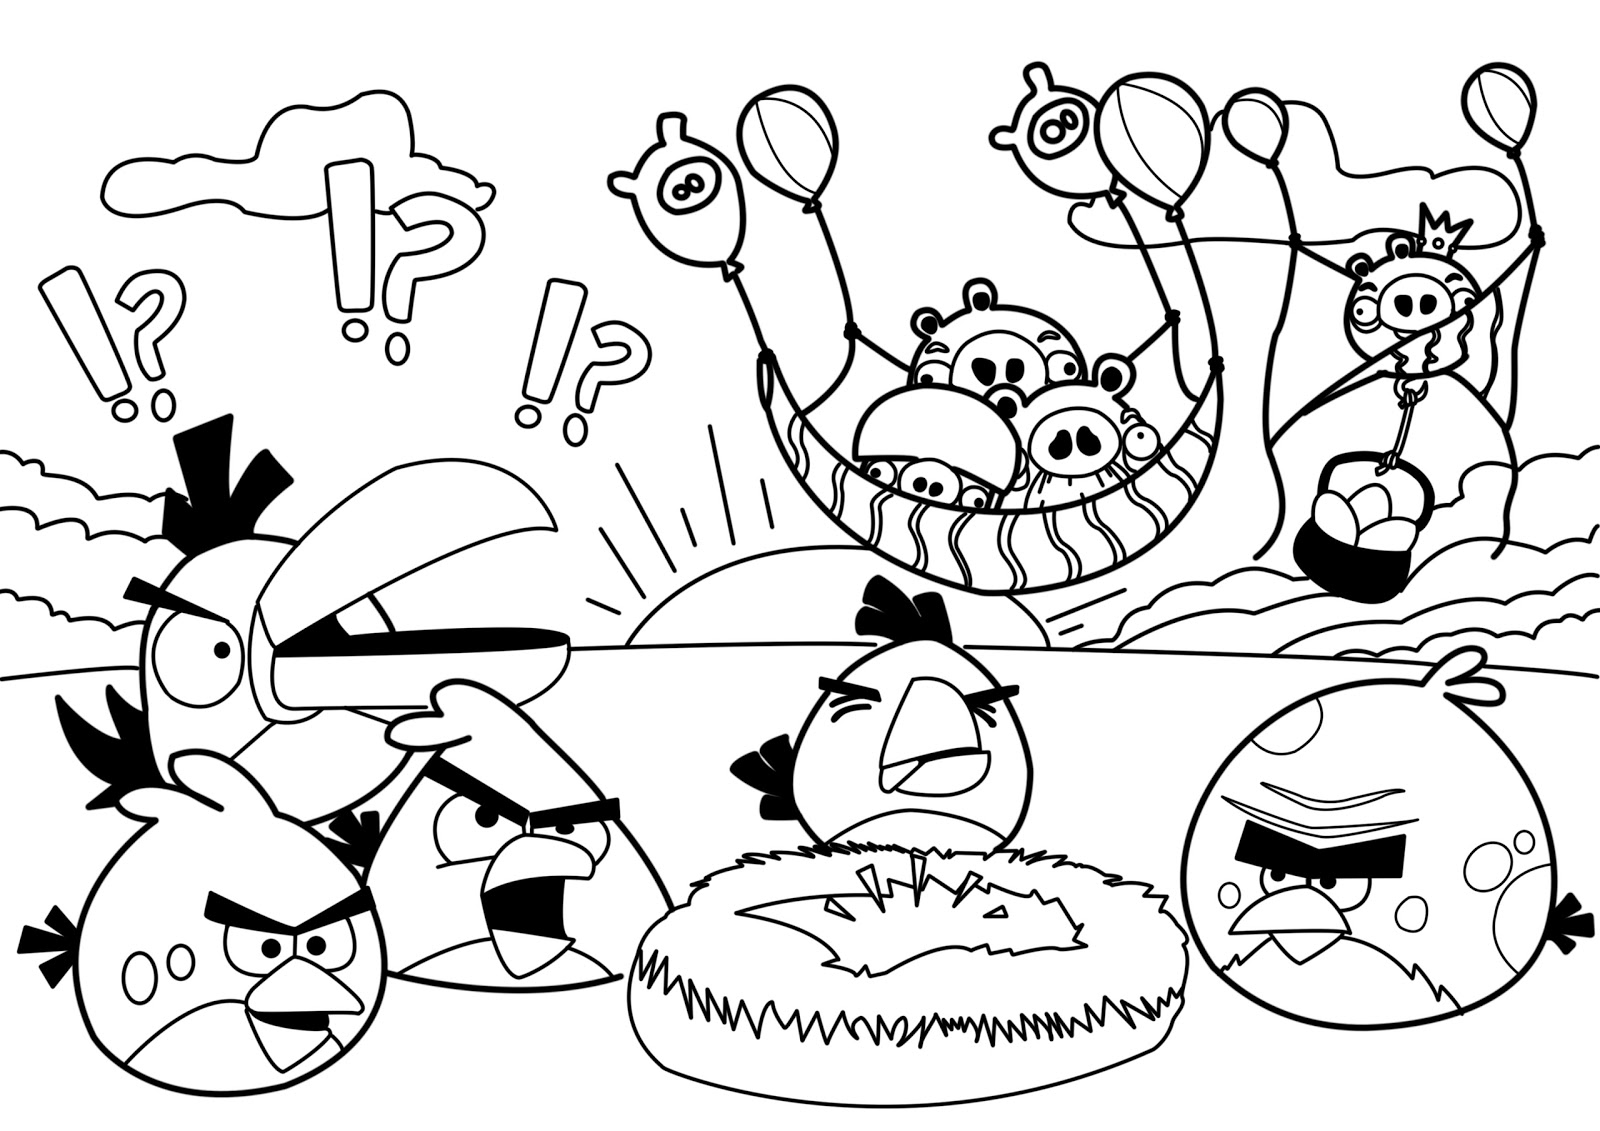 angry birds pictures to color and print new angry birds coloring pages all free coloring page pictures print color to angry and birds